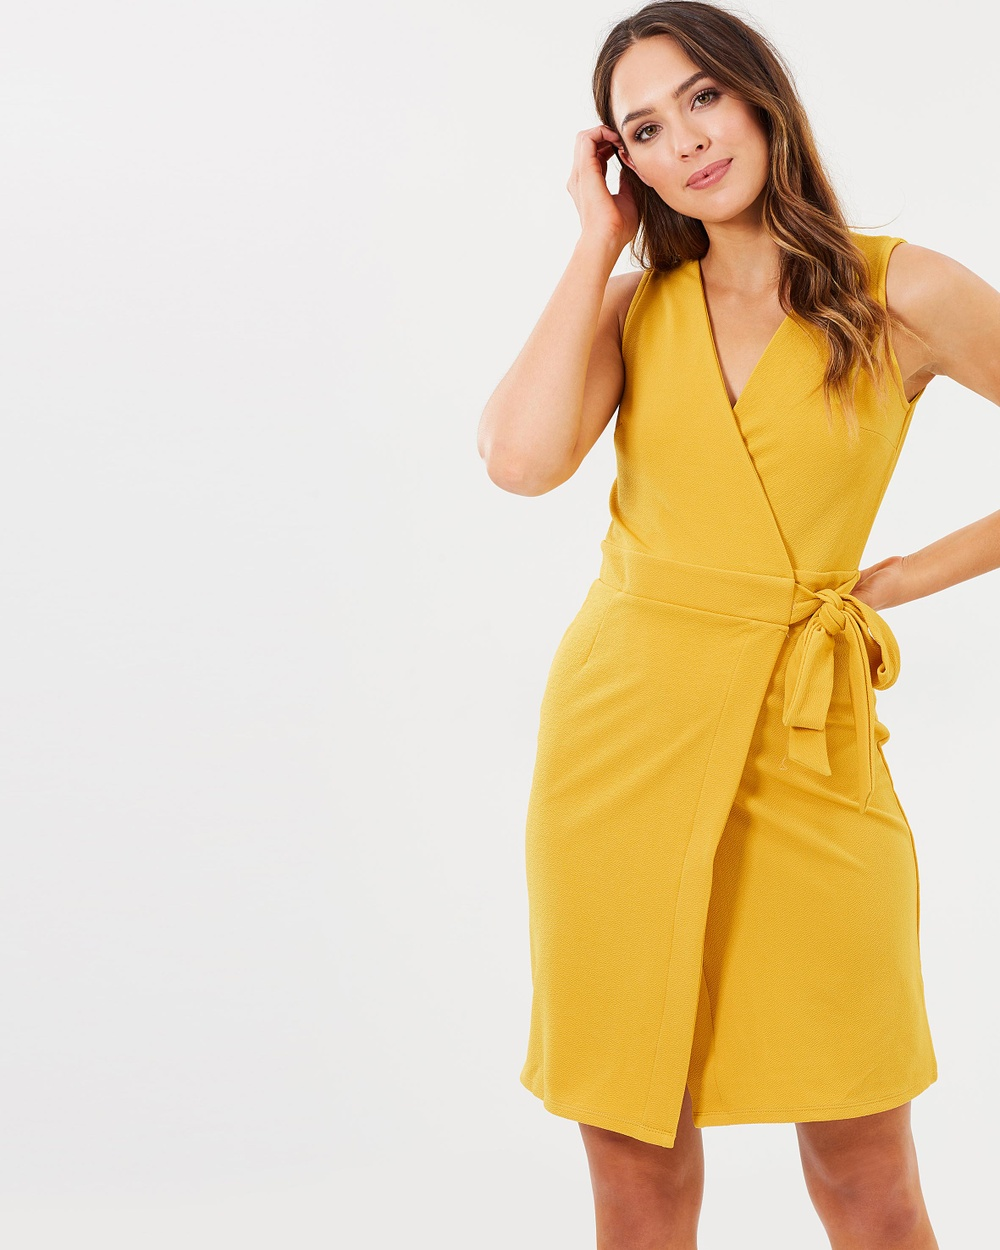 Dorothy Perkins Sleeveless Wrap Dress Dresses Ochre Sleeveless Wrap Dress